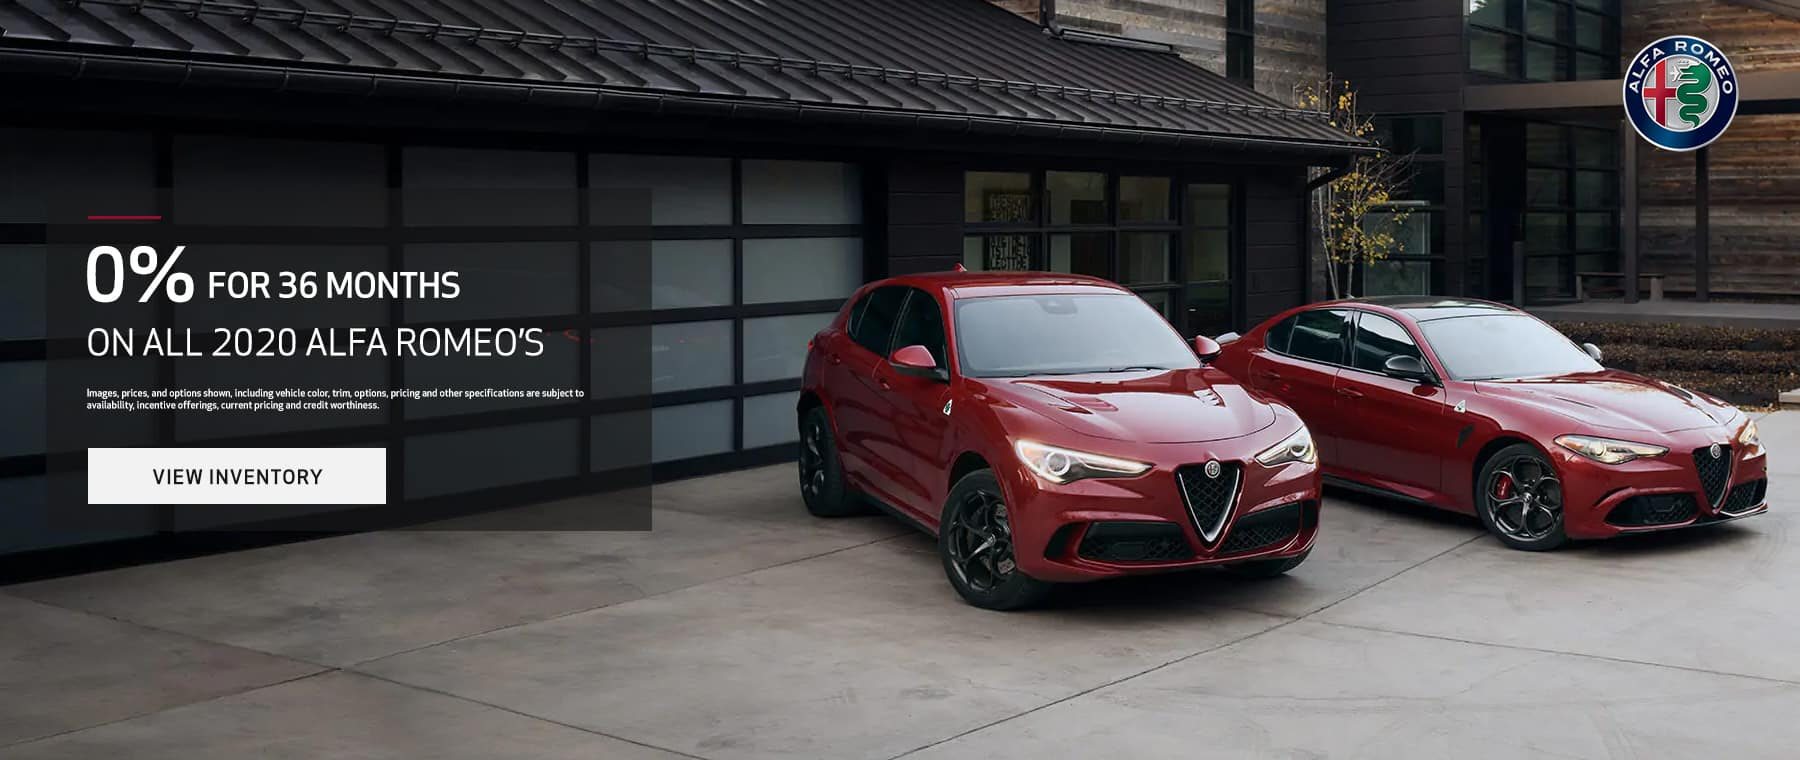 0% for 36 months on all 2020 alfa Romeo's